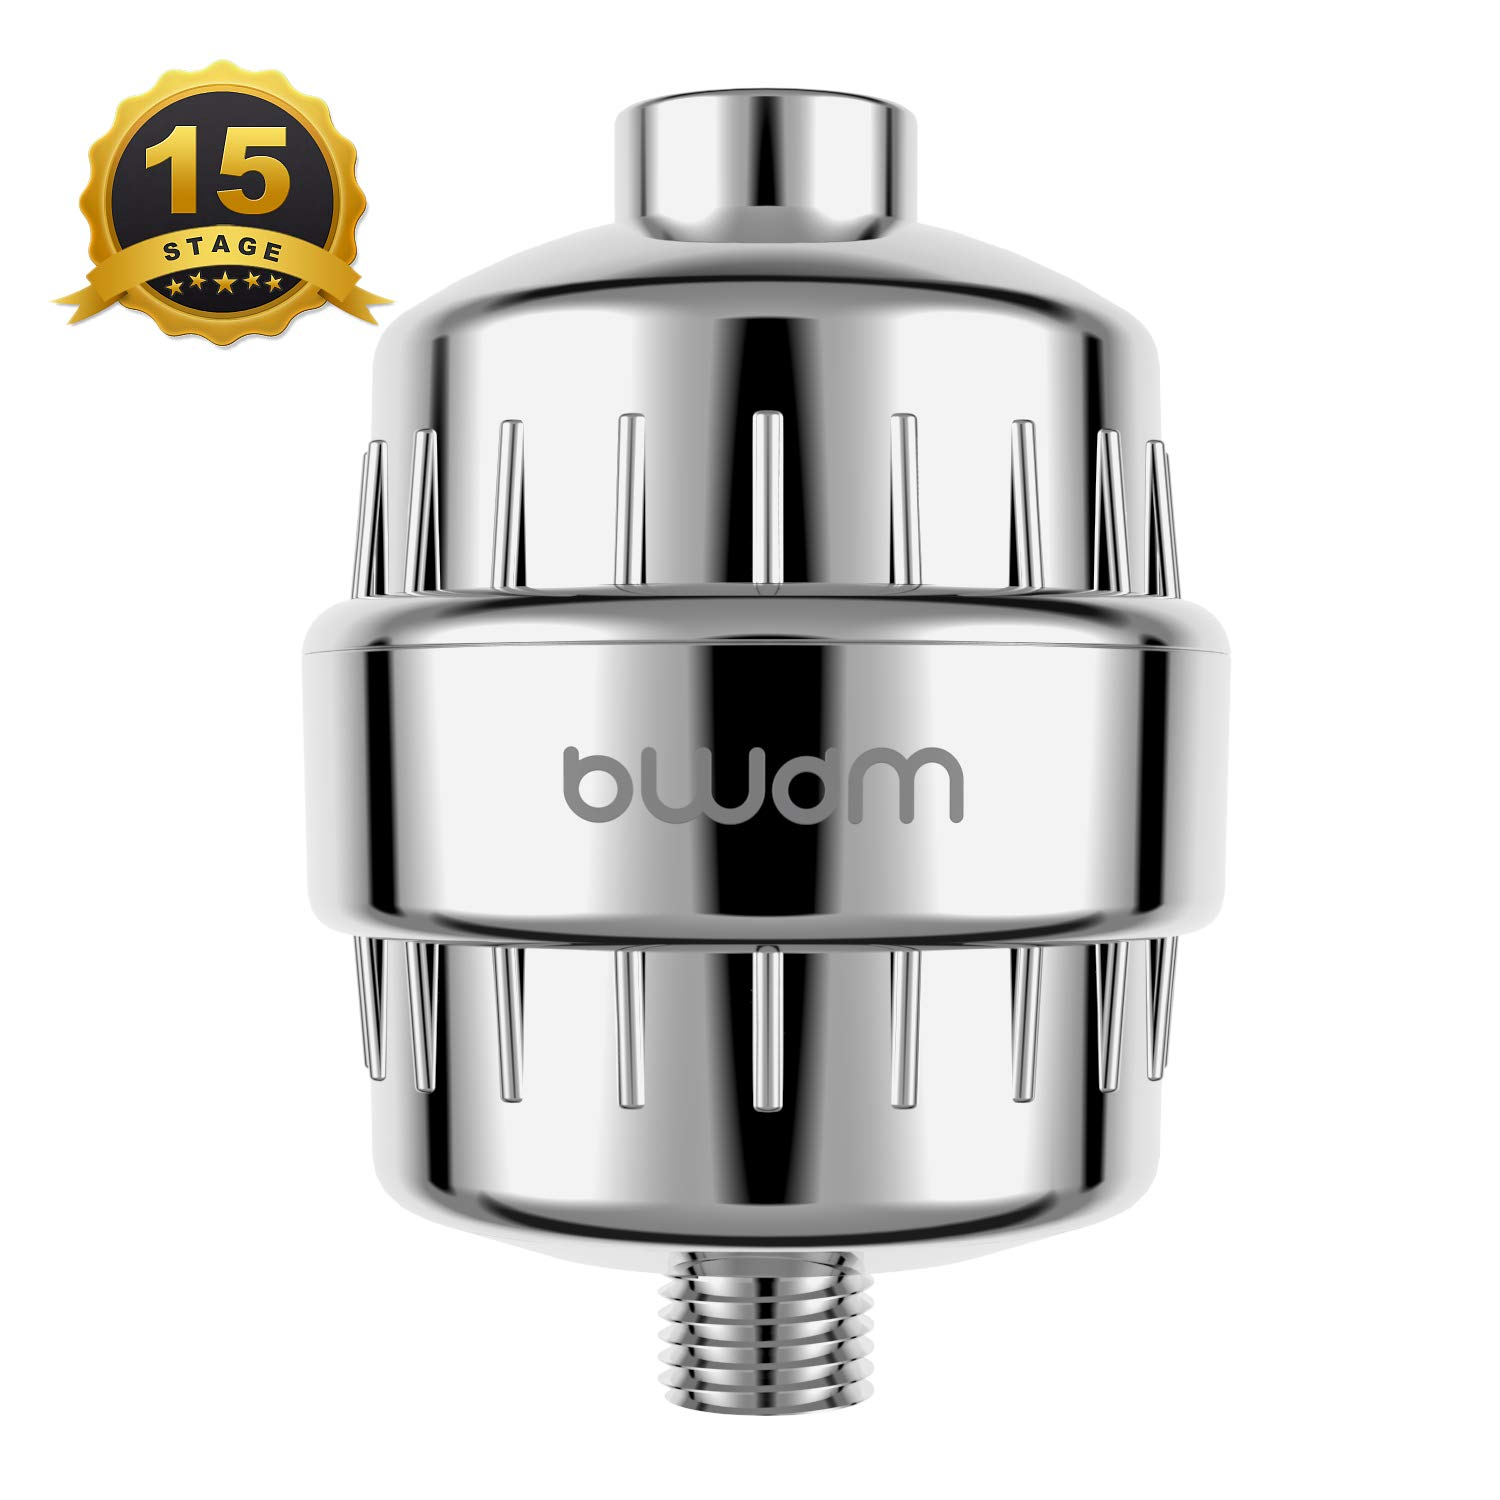 4. BWDM 15-Stage Shower Filter